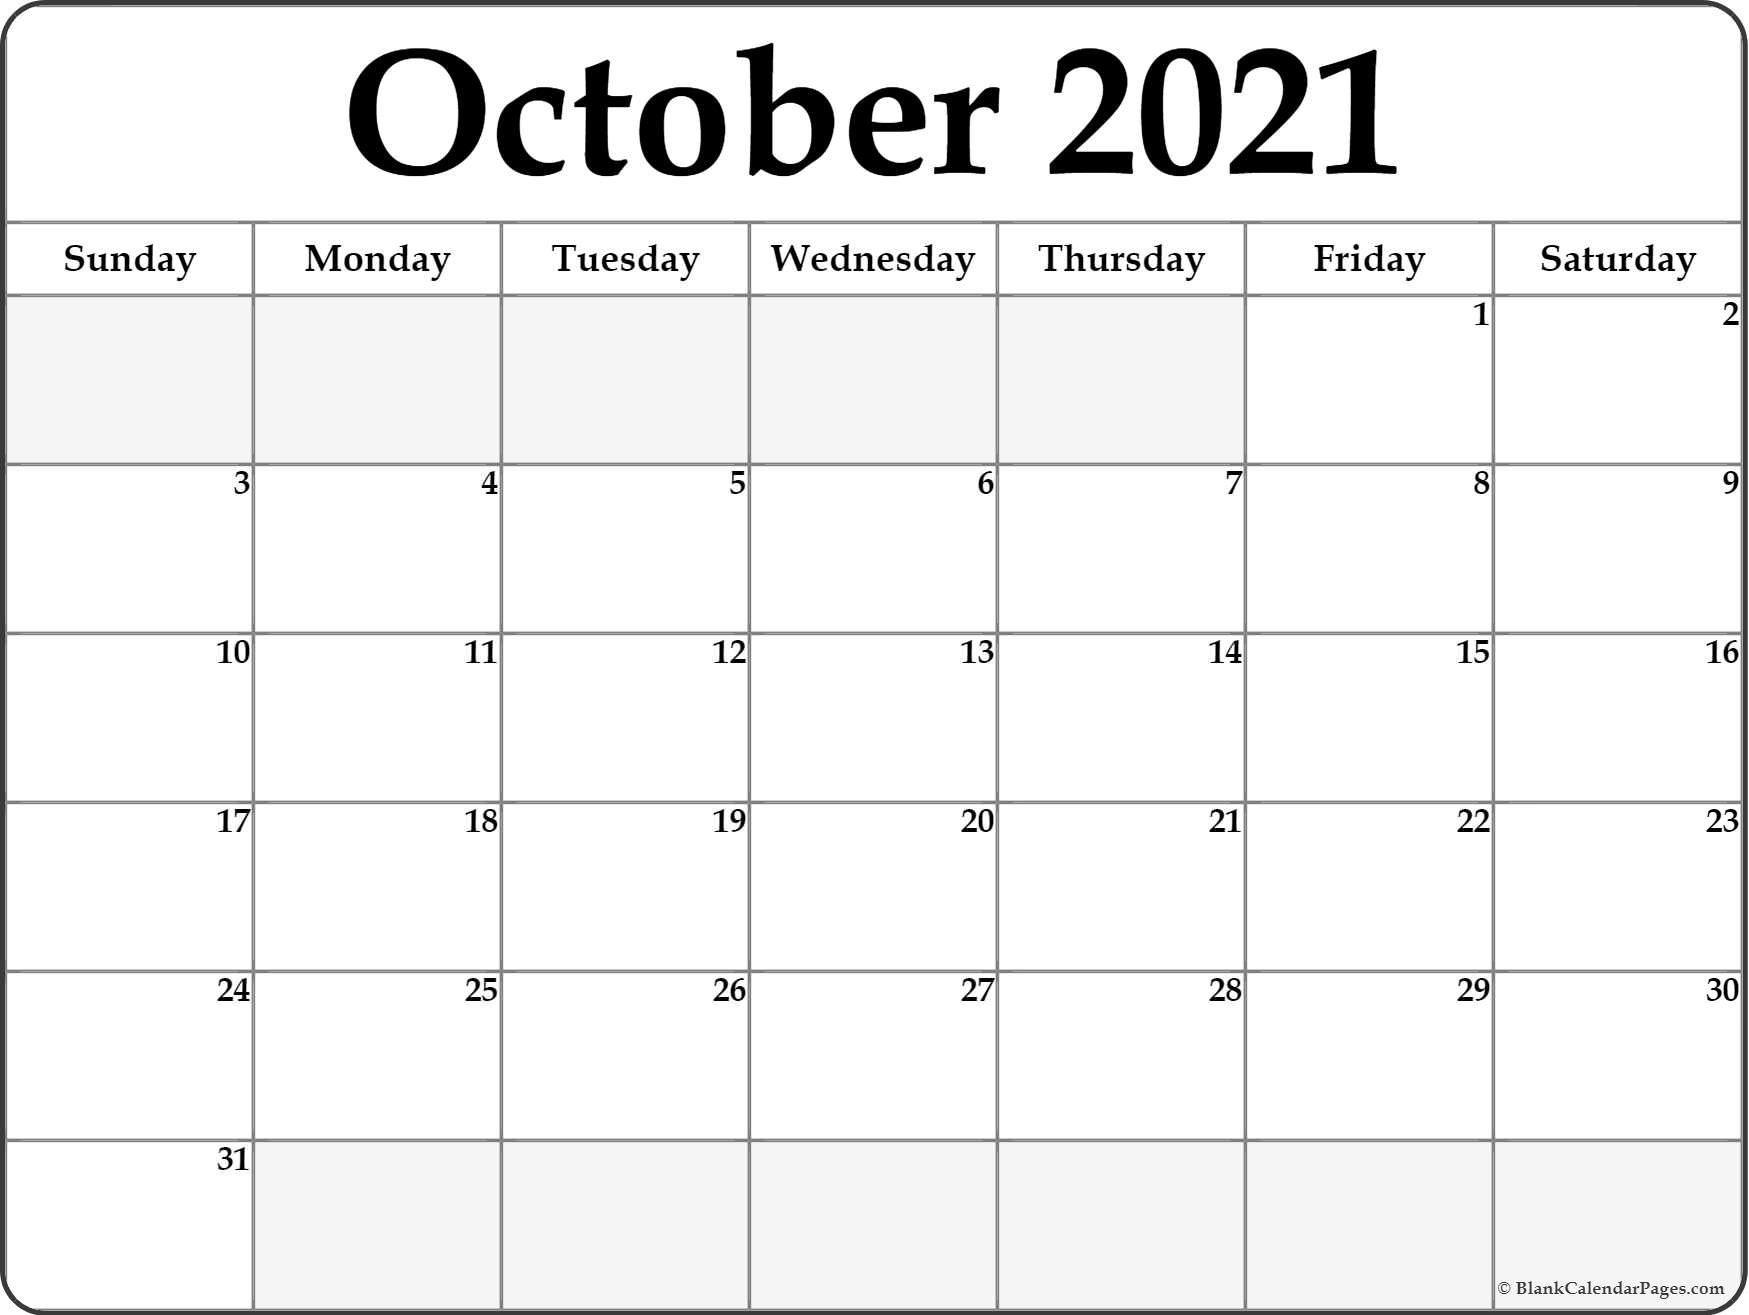 photograph regarding Free Printable October Calendars known as Oct 2019 calendar totally free printable regular monthly calendars